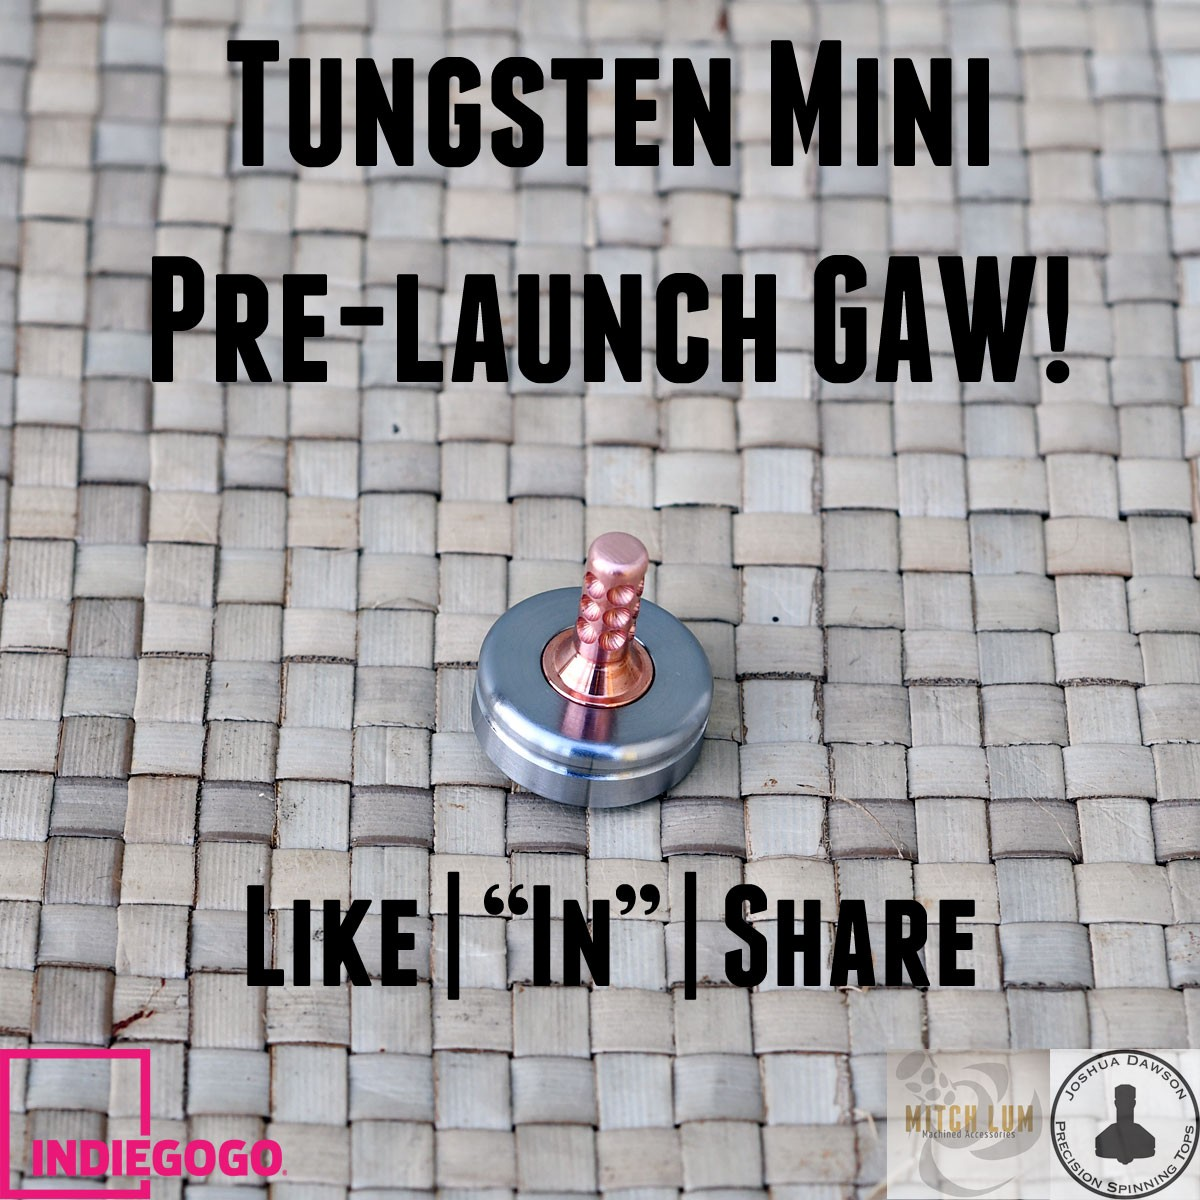 Picture of Lum/Dawson TungstenMini - Pre-Launch GAW